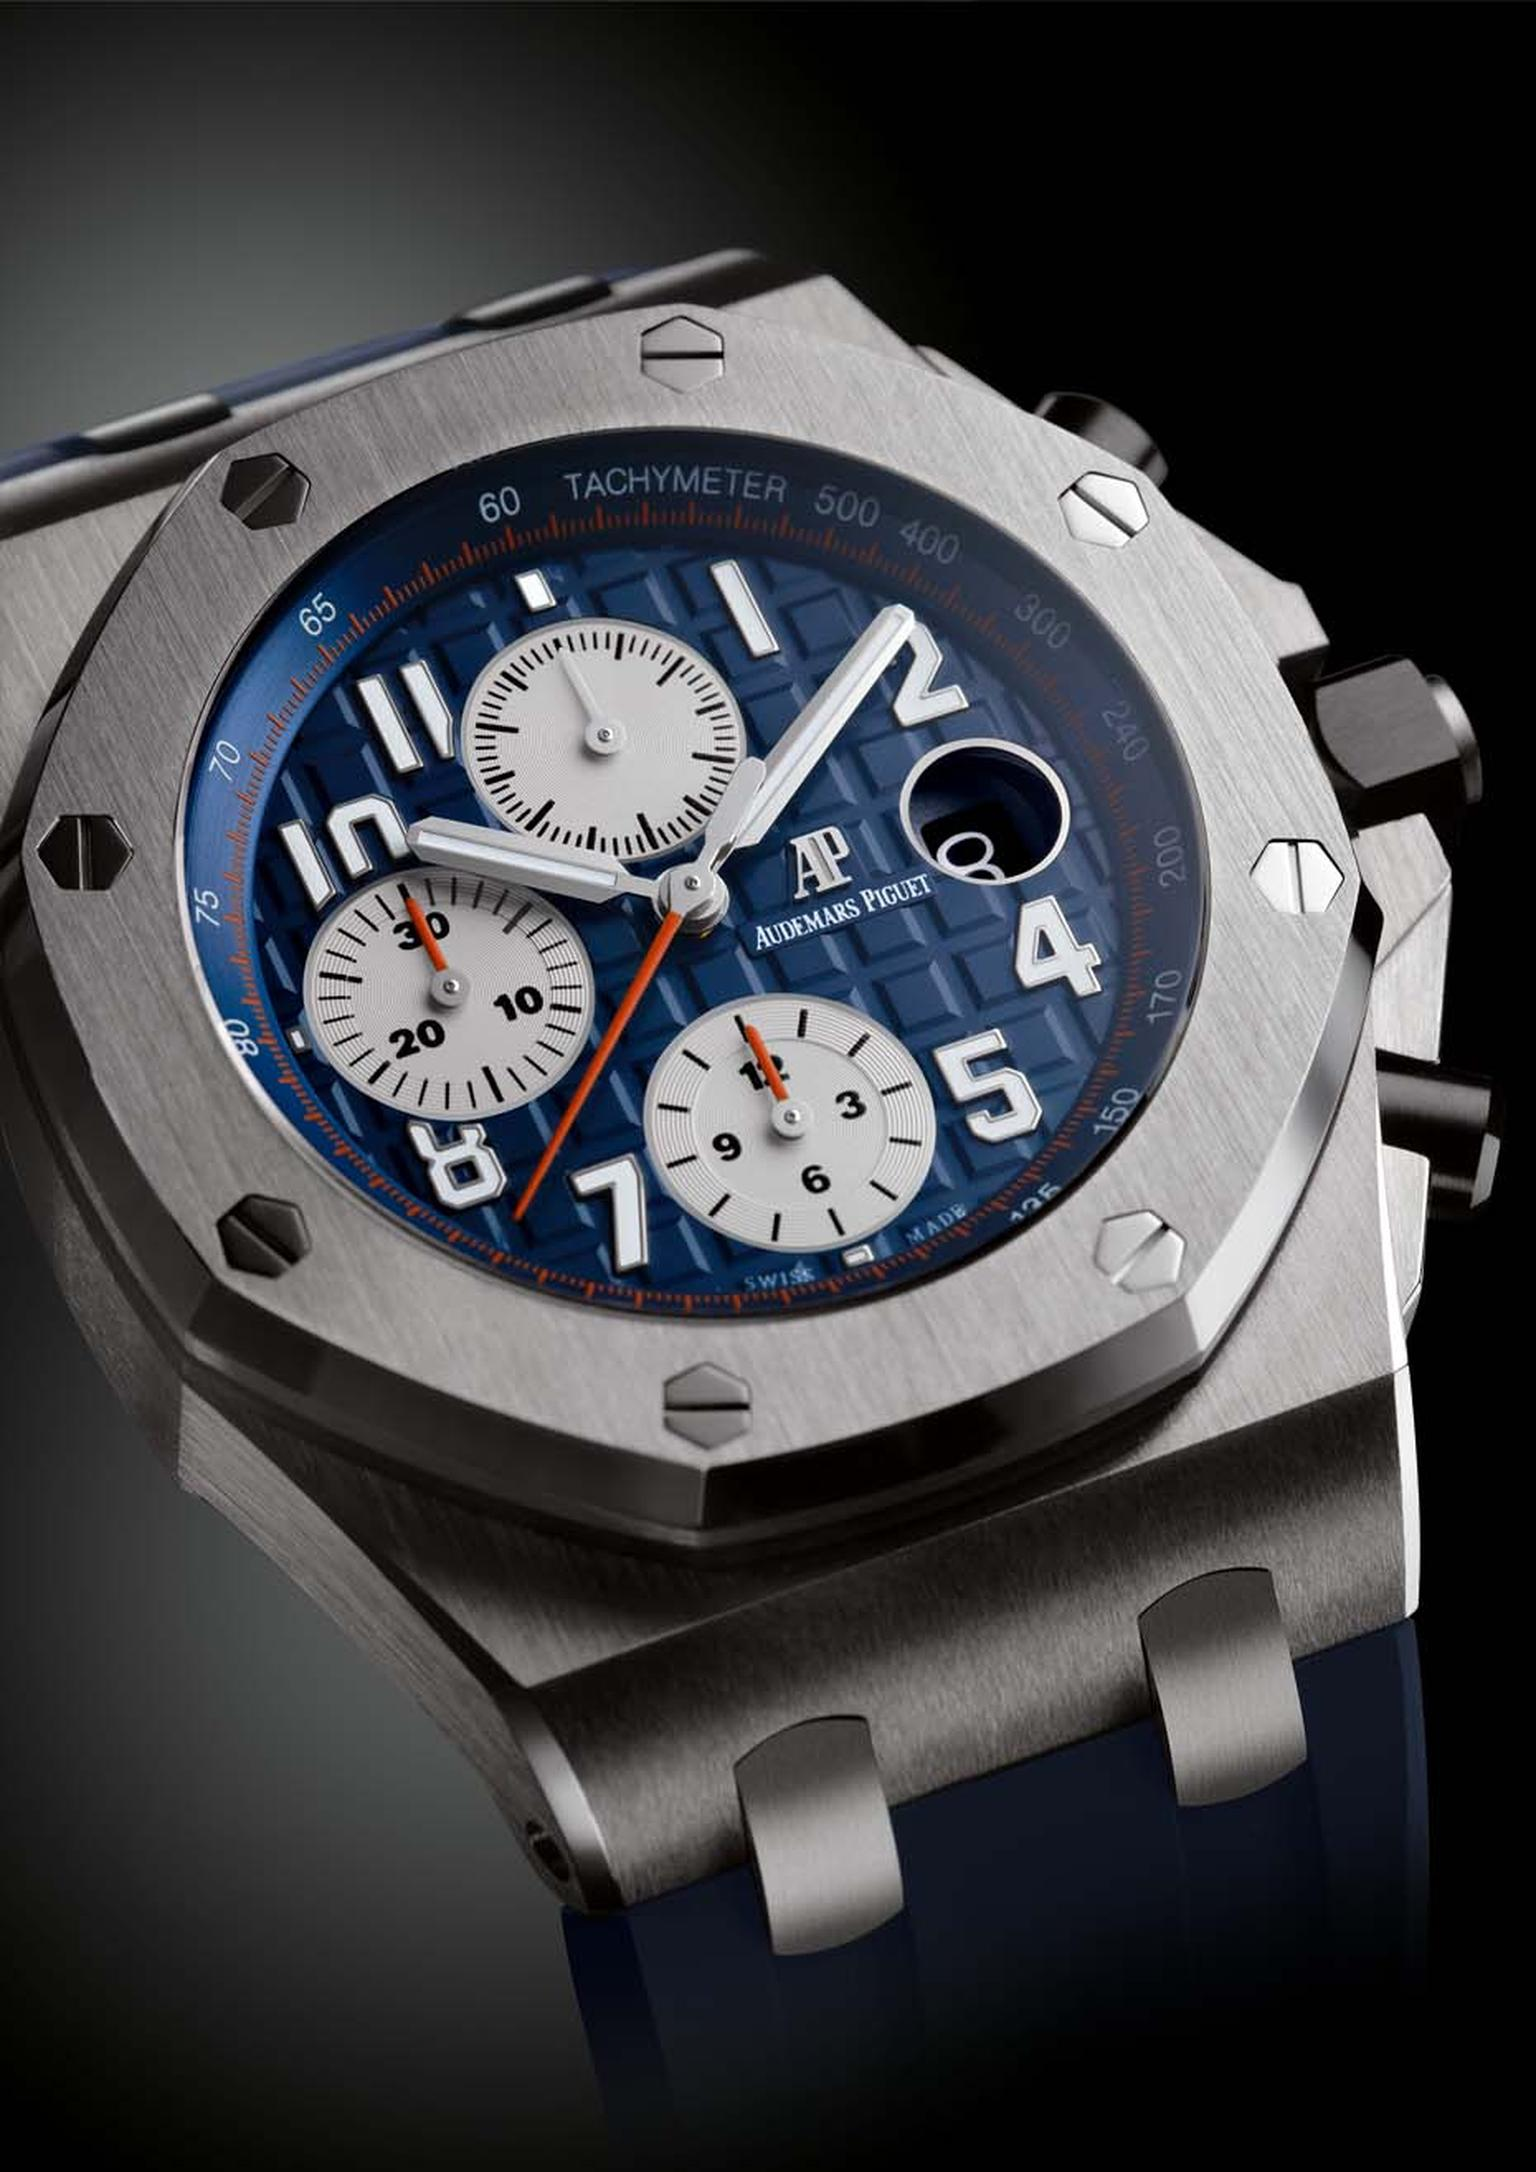 Audemars Piguet Royal Oak Offshore Chronograph watch featuring a steel case, blue dial with a 'Méga Tapisserie' pattern and blue rubber strap (£18,700).